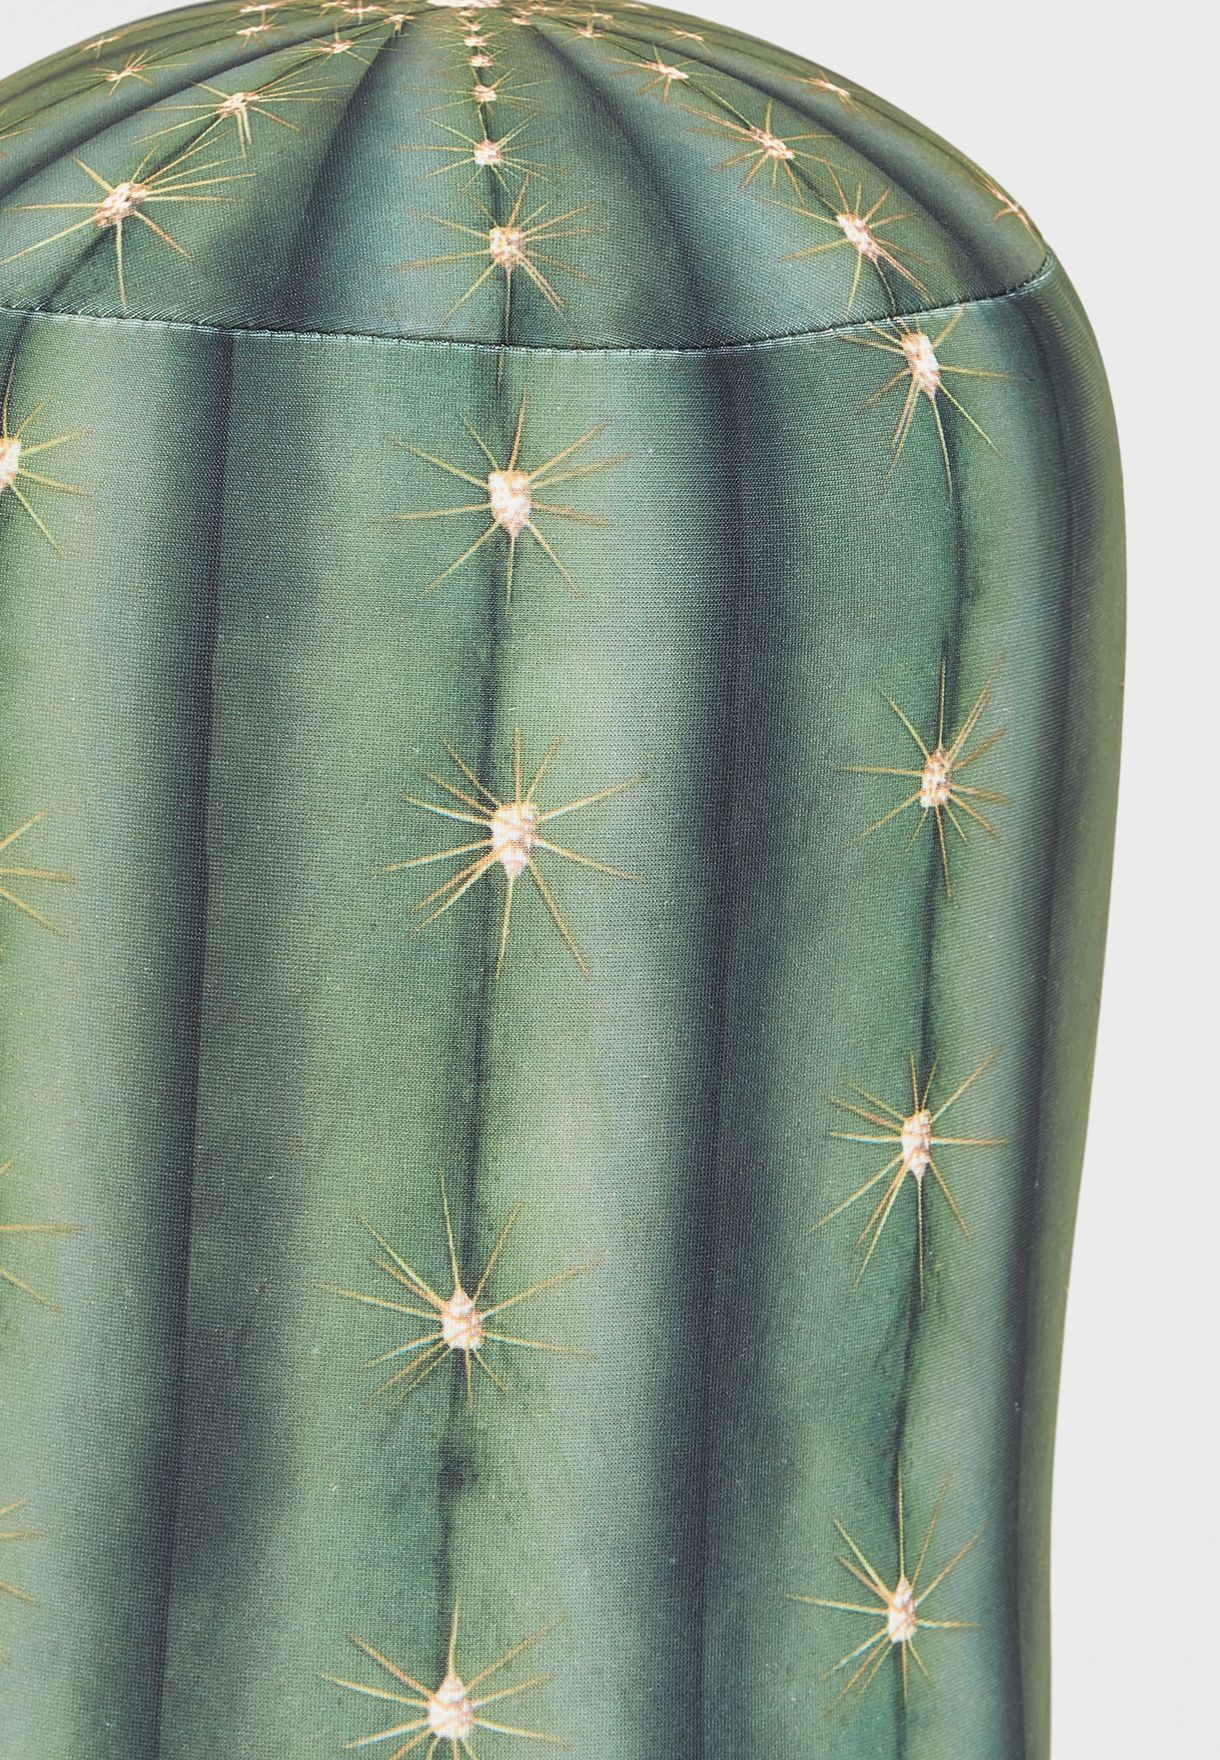 Cactus Pillow Insert Included